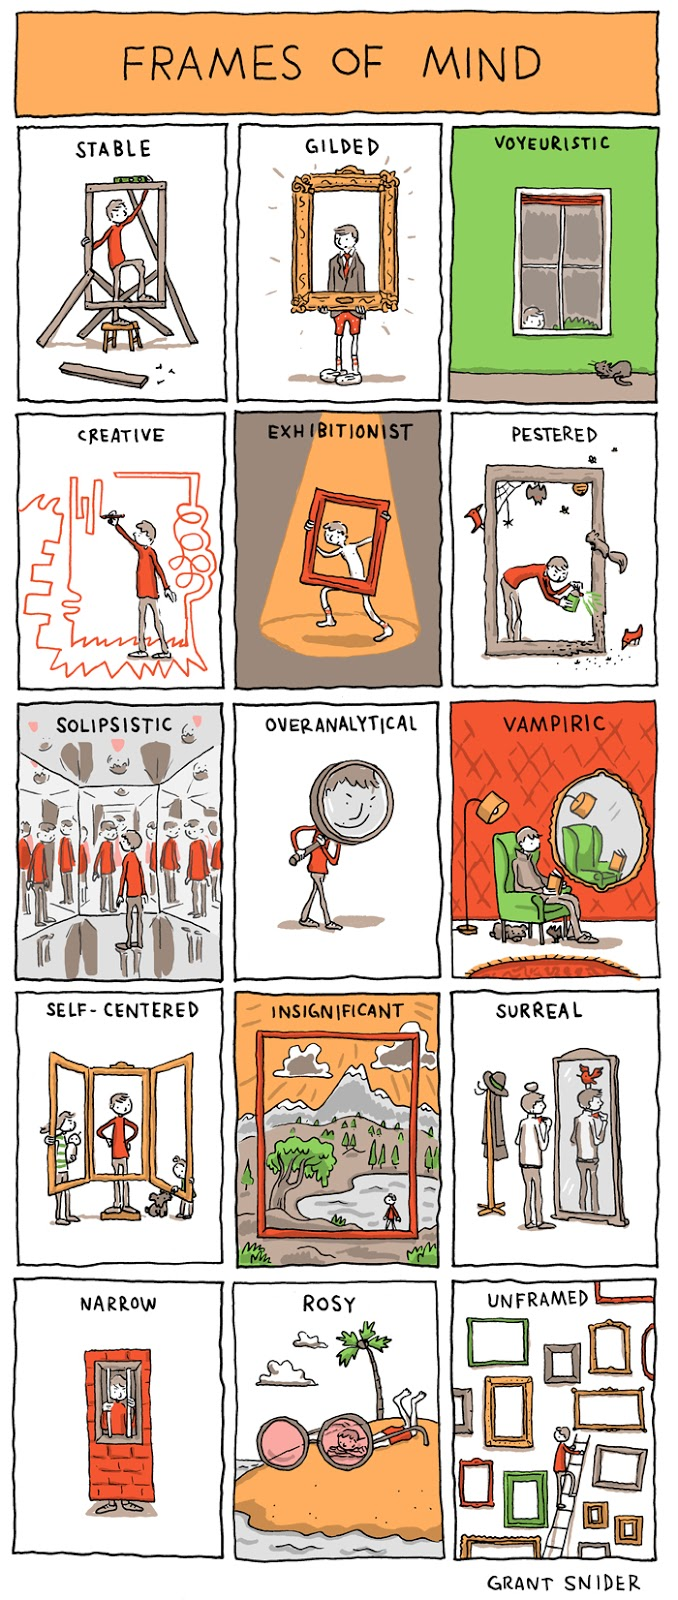 'Frames of Mind', A Comic by Grant Snider Exploring Different States of Mind